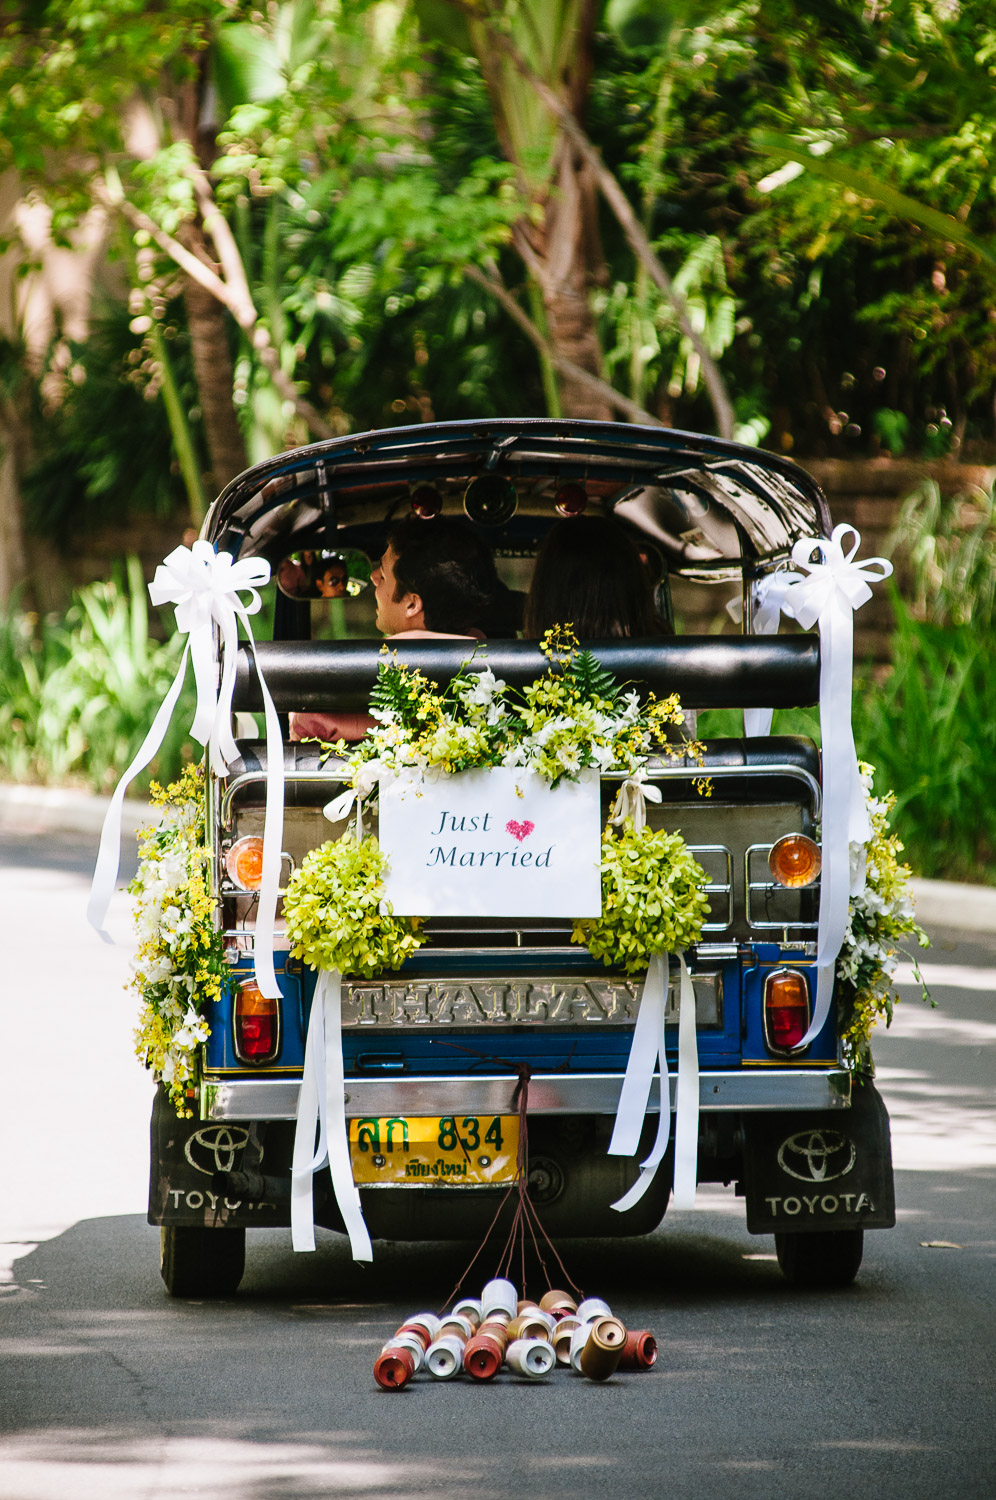 Four Seasons Resort Chiang Mai Wedding, tuk-tuk with Just Married sign.